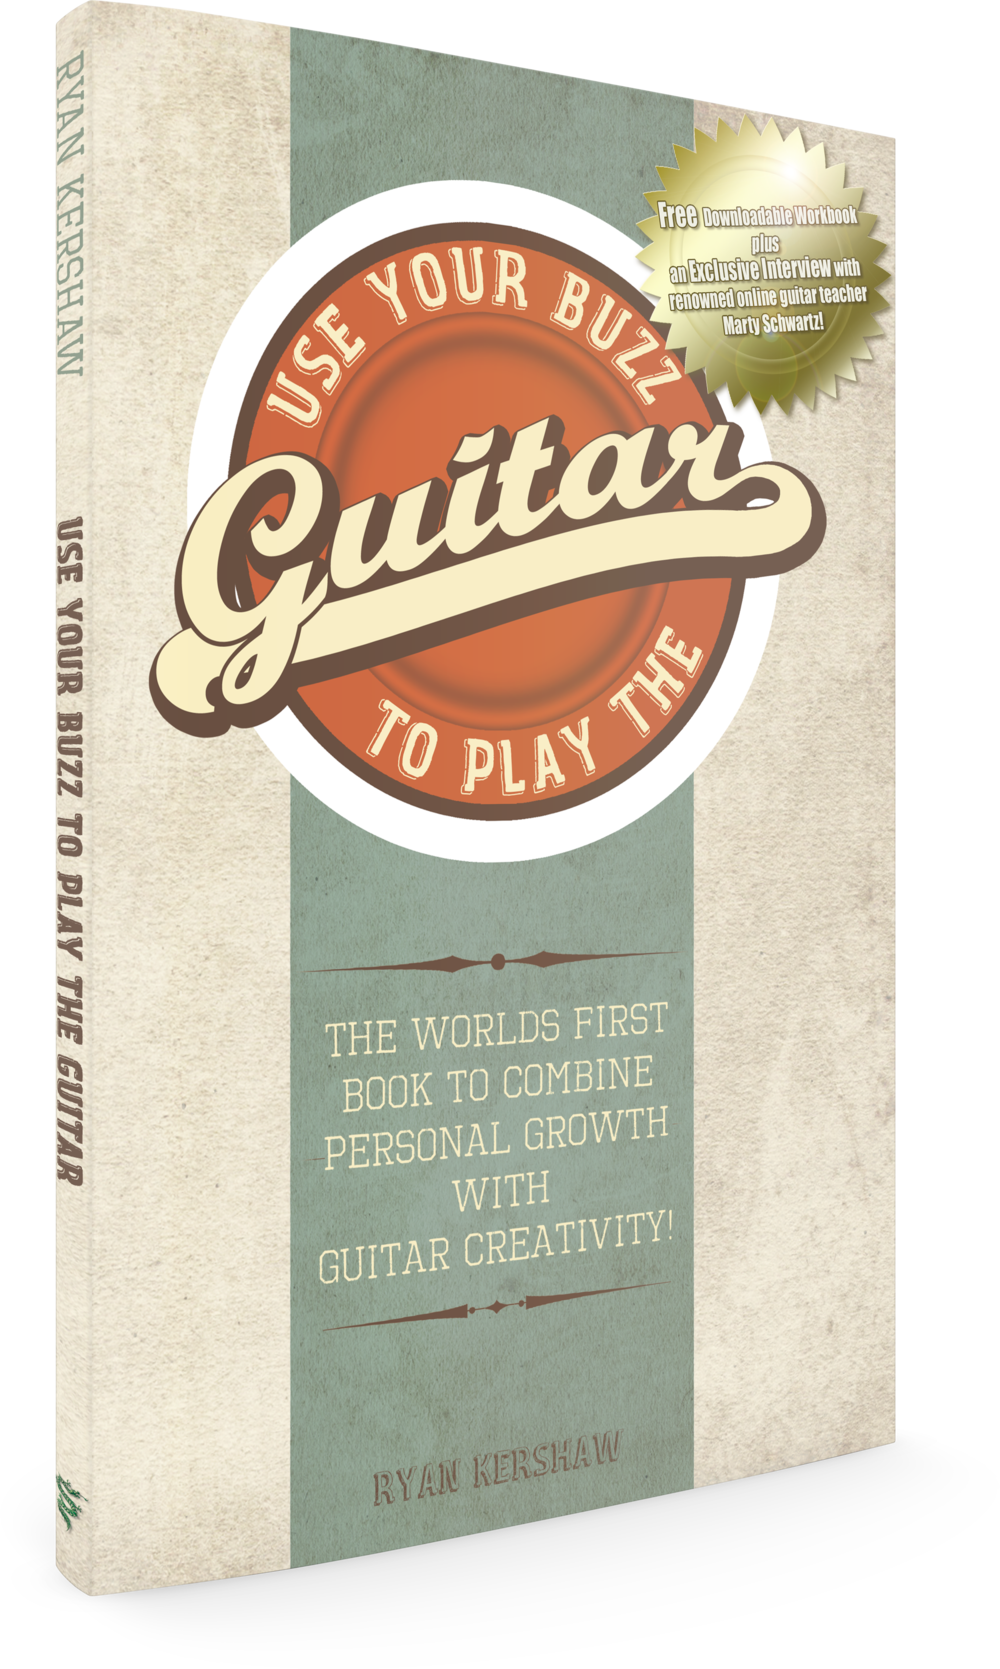 Use Your Buzz To Play The Guitar by Ryan Kershaw